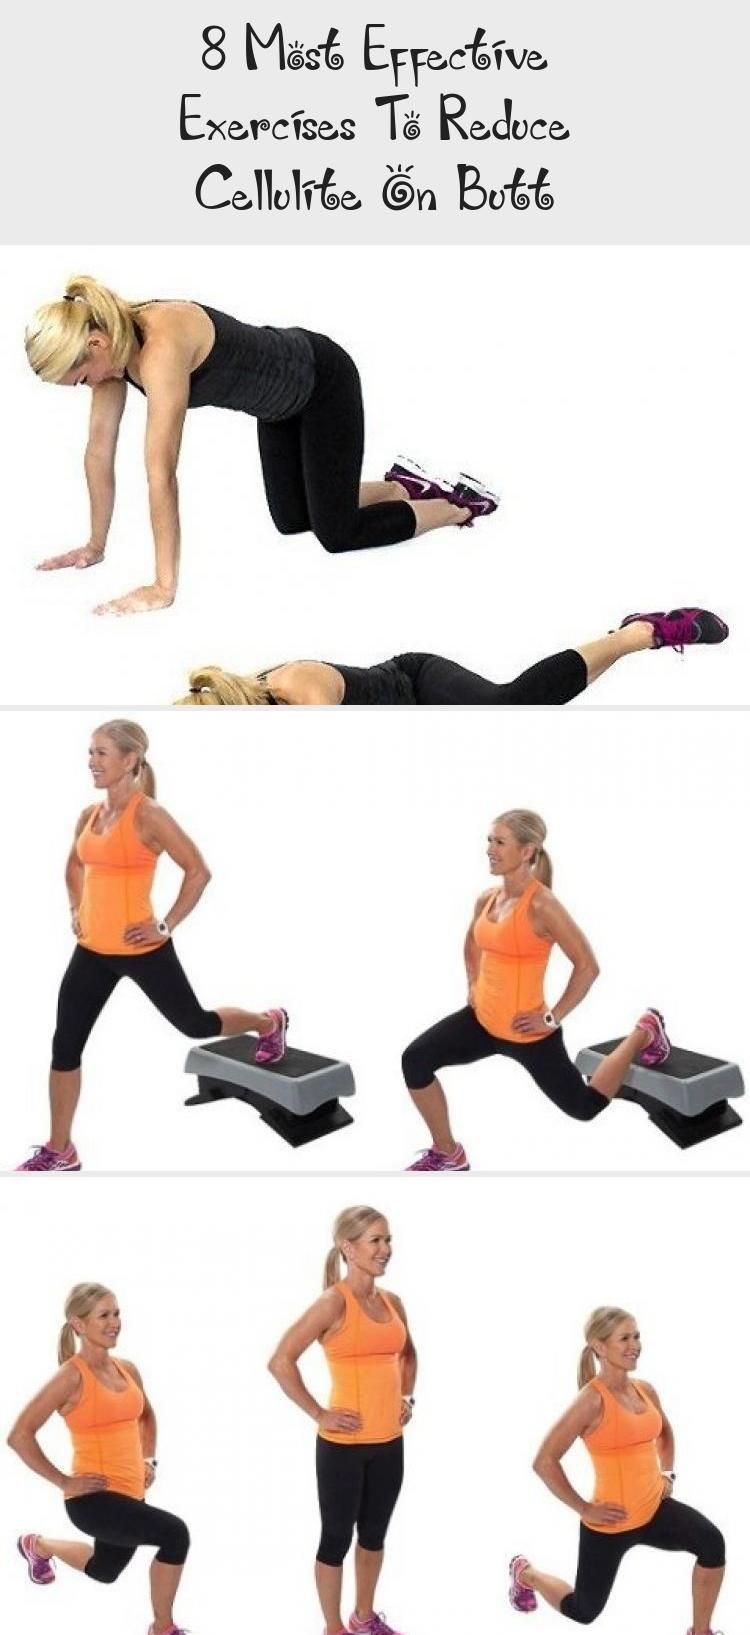 Exercises to reduce butt size